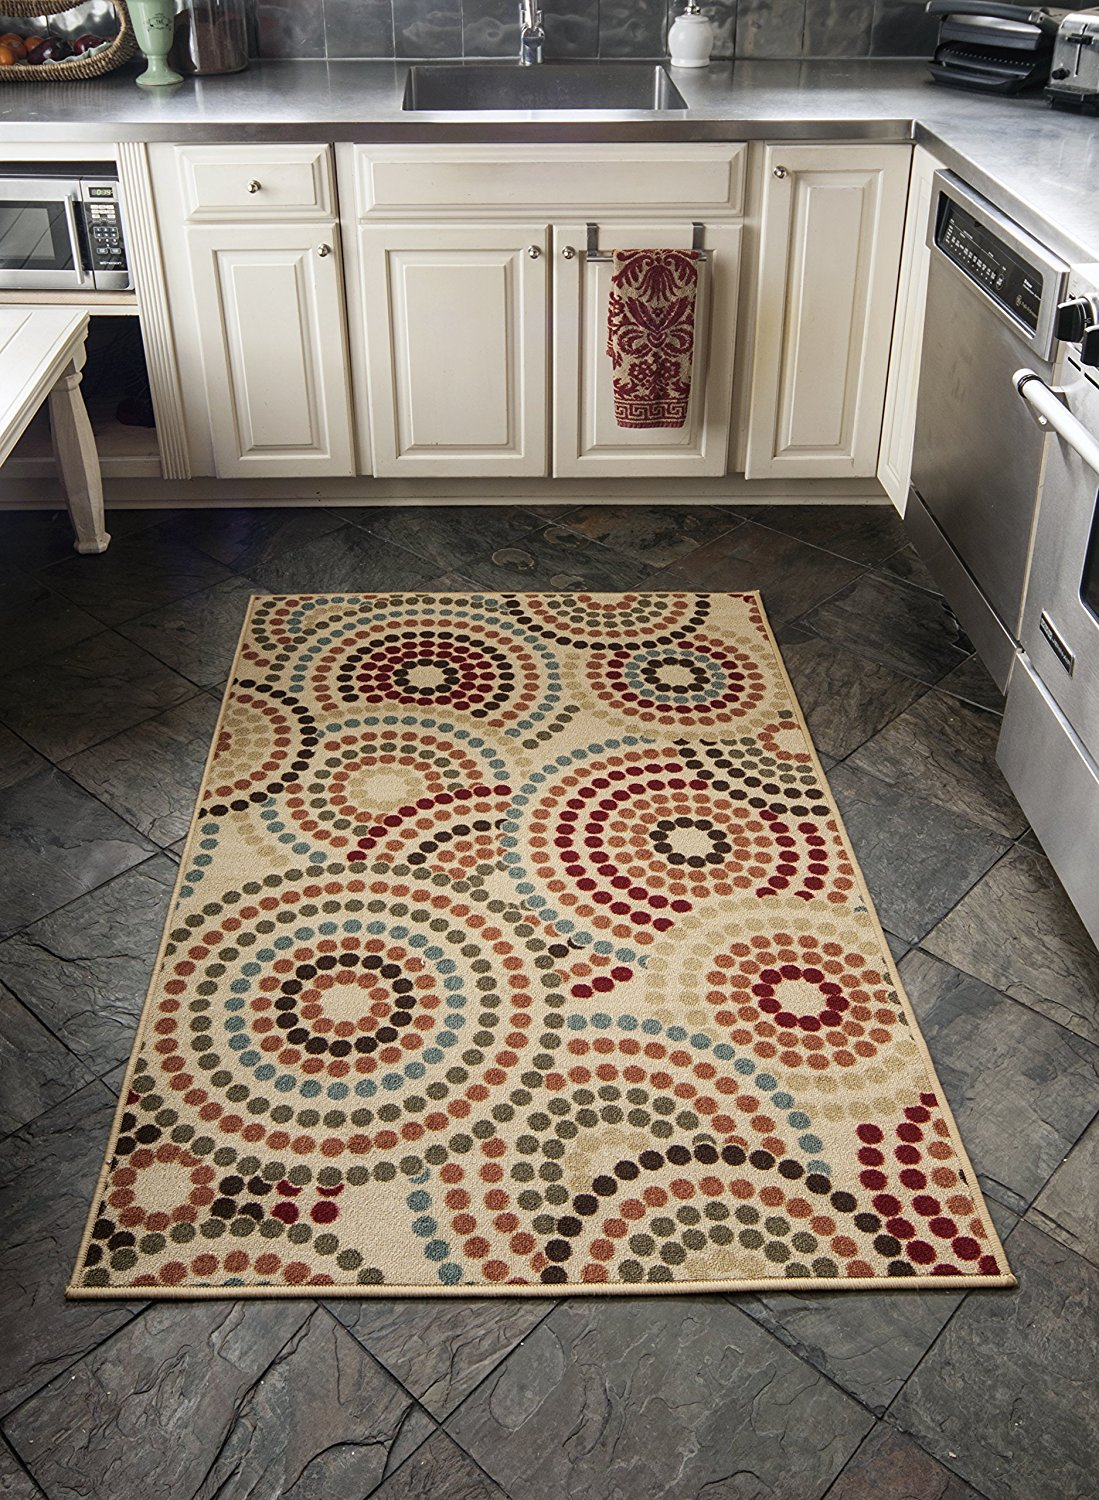 "Diagona Designs Contemporary Abstract Circles Design Modern Non-Slip Area Rug, 3'3"" W x 5'0"" L ,Beige"